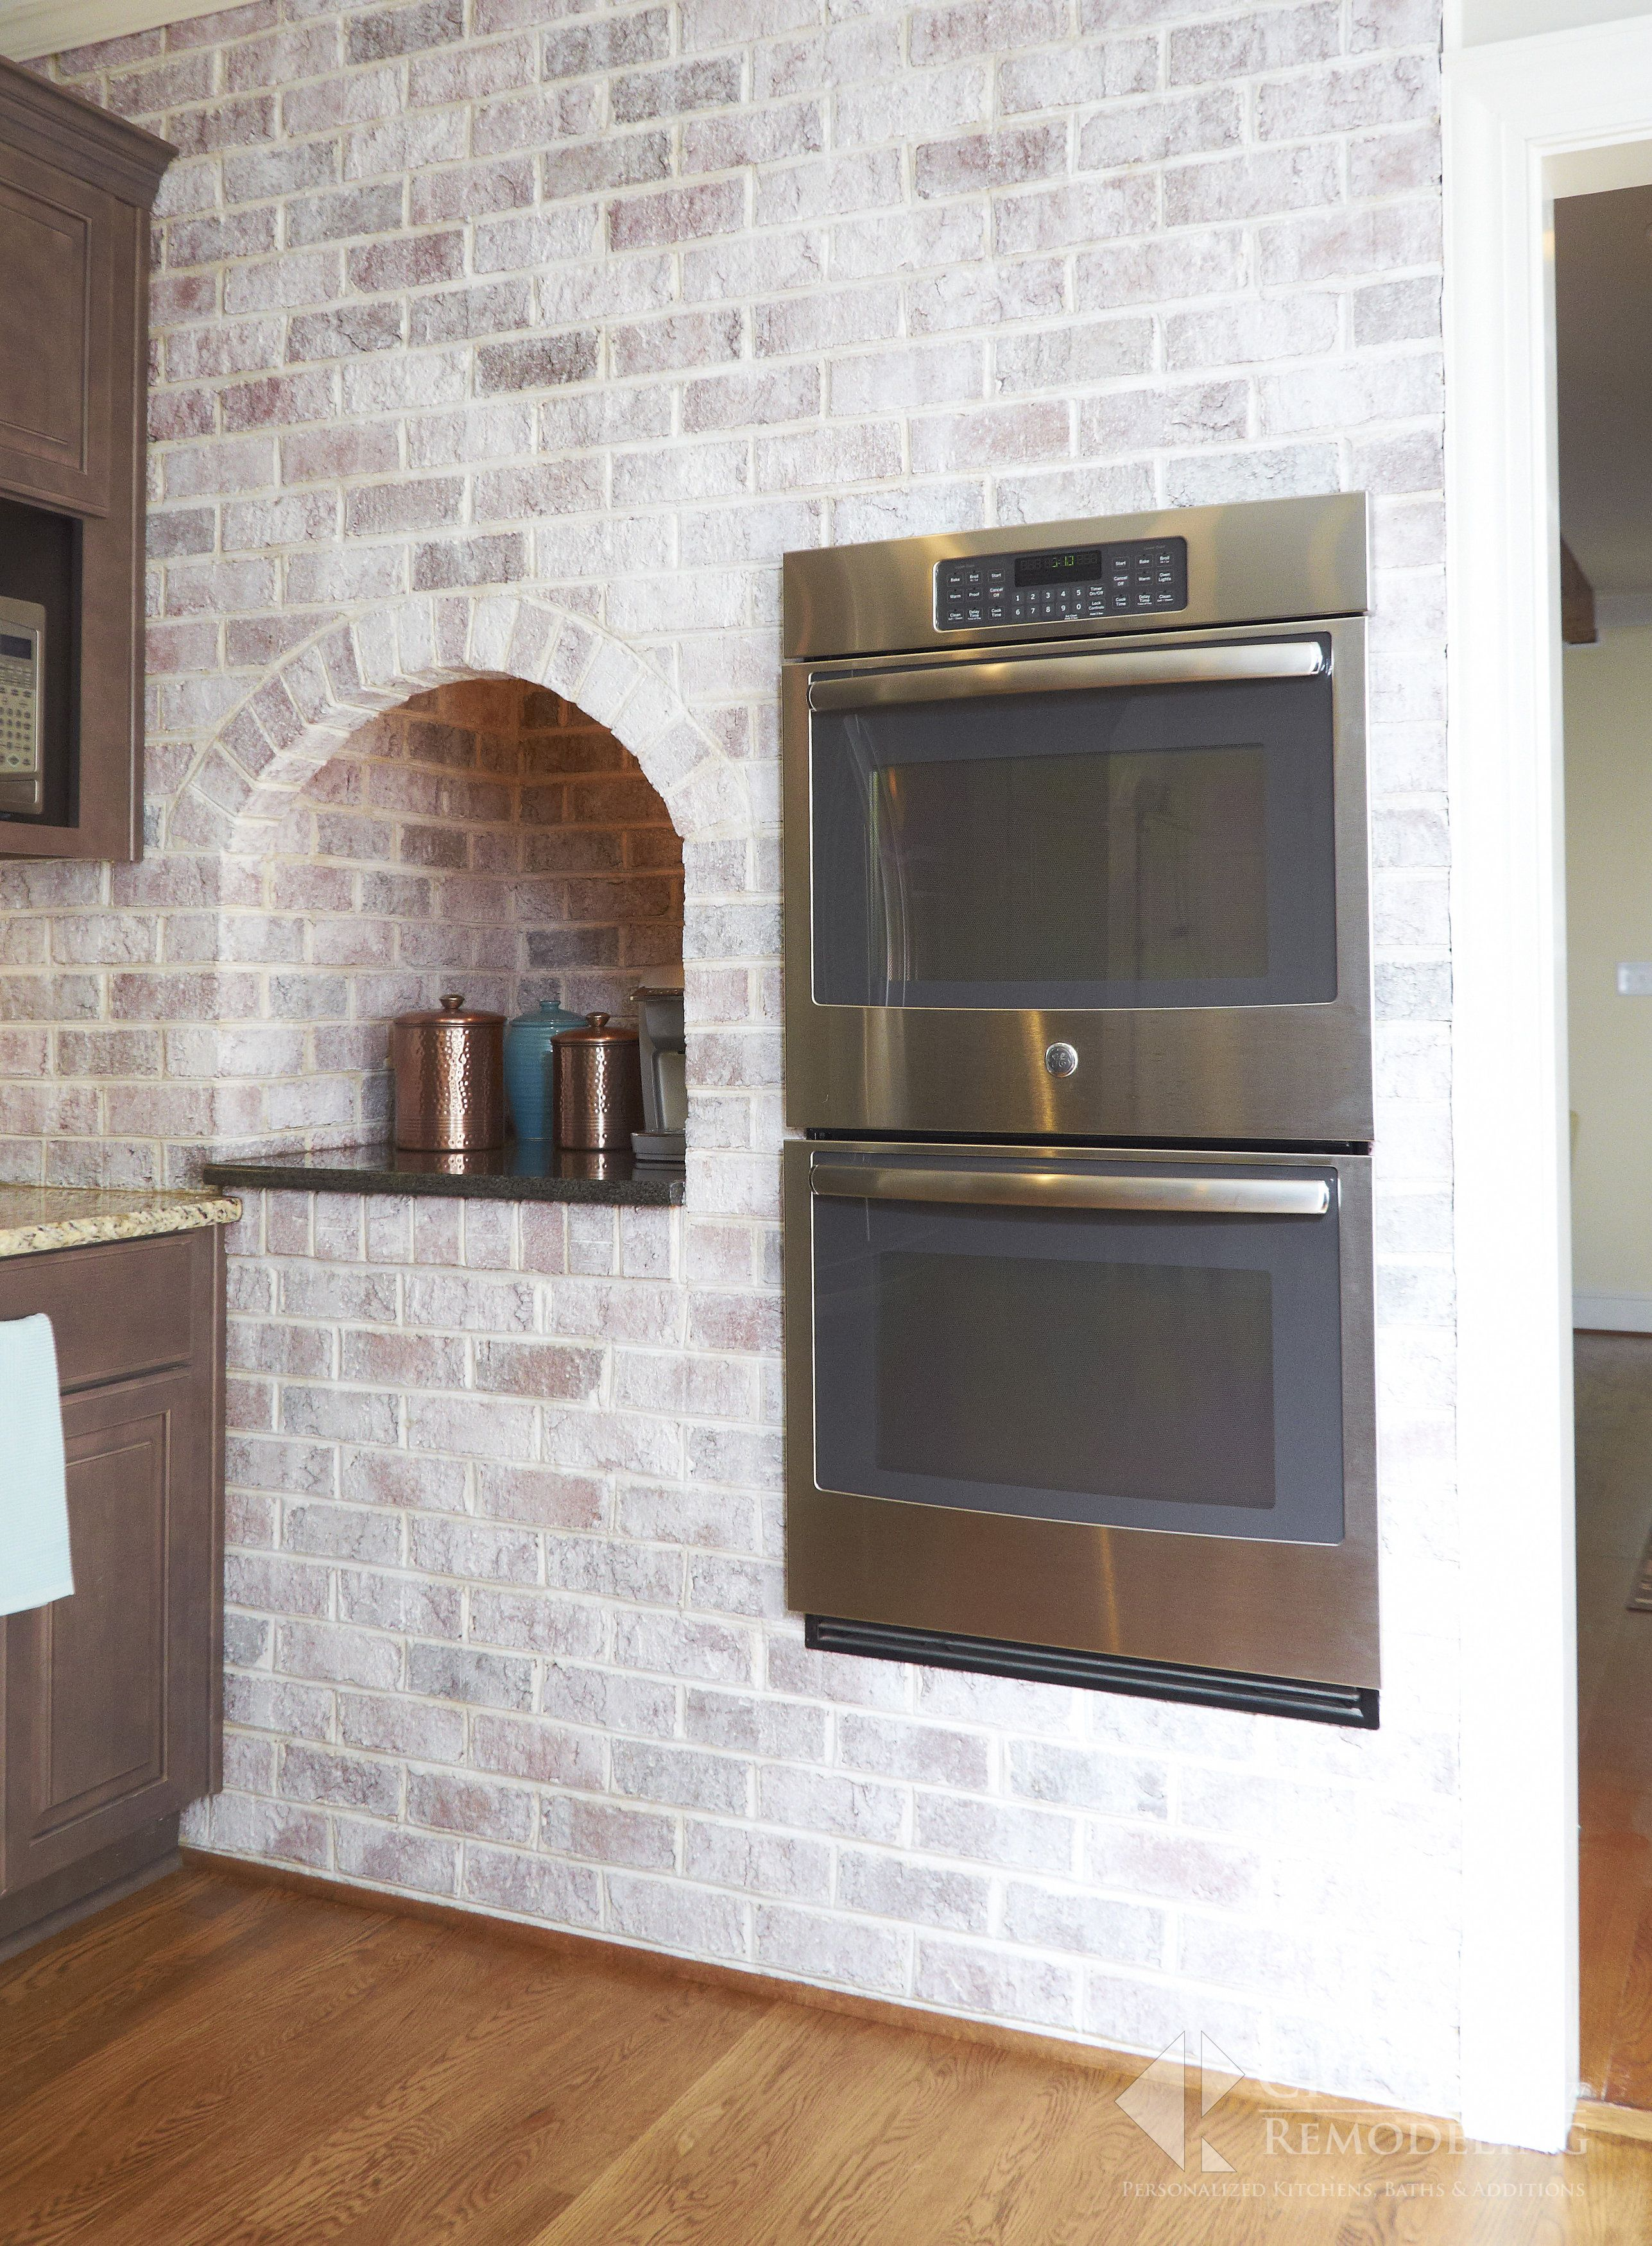 A Built In Coffee Station And Oven! Newport News, VA, Kitchen By Criner